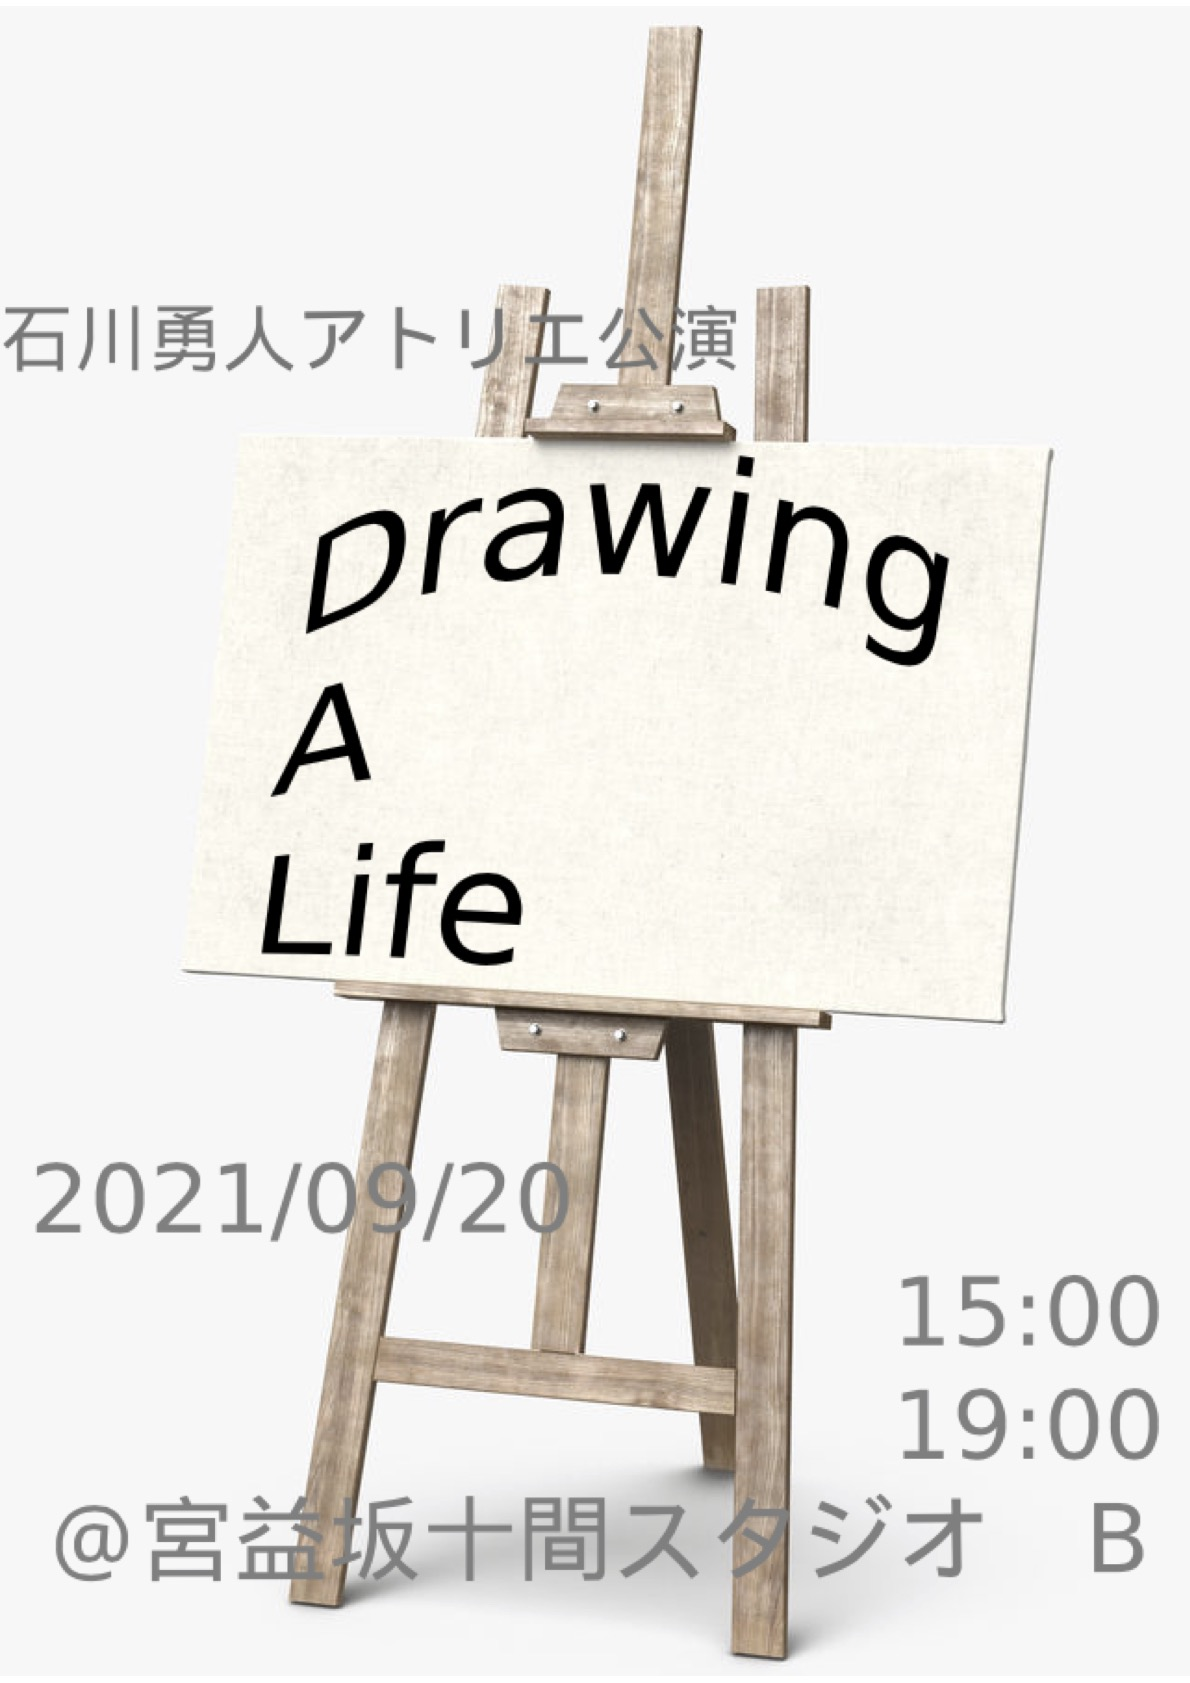 Drawing A Life